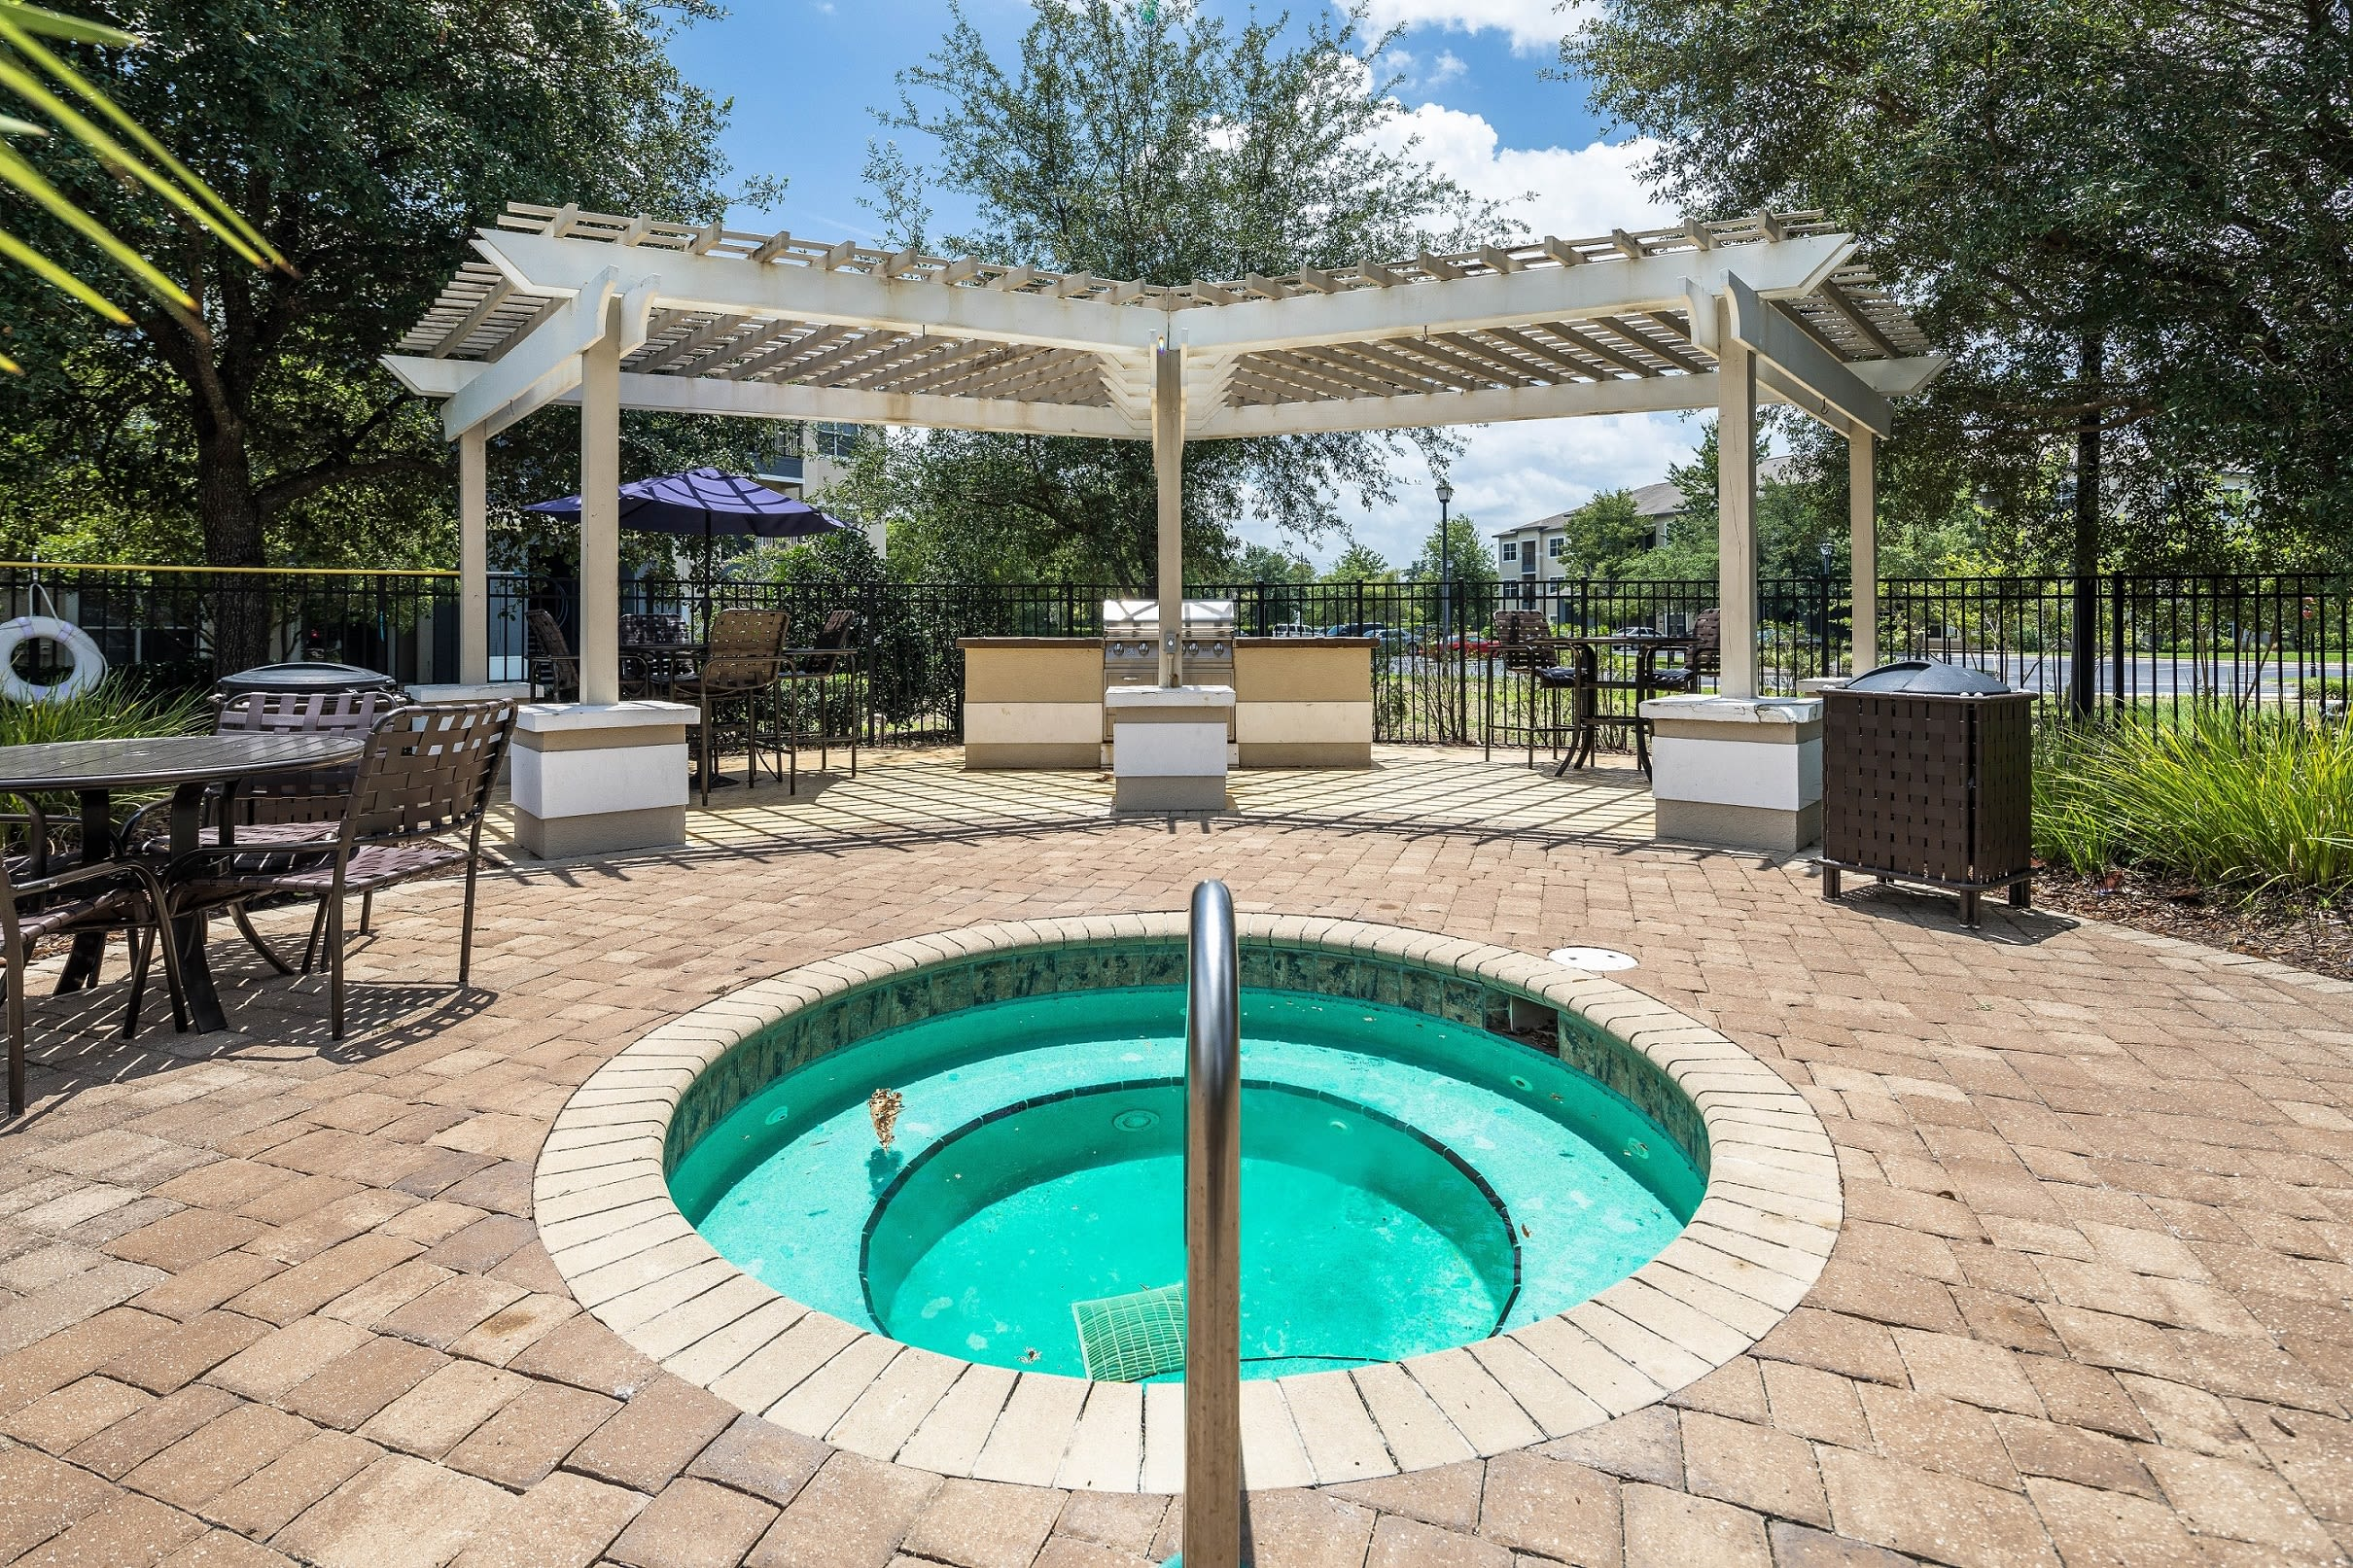 Resort style hot tub with gazebos at Mezza in Jacksonville, Florida